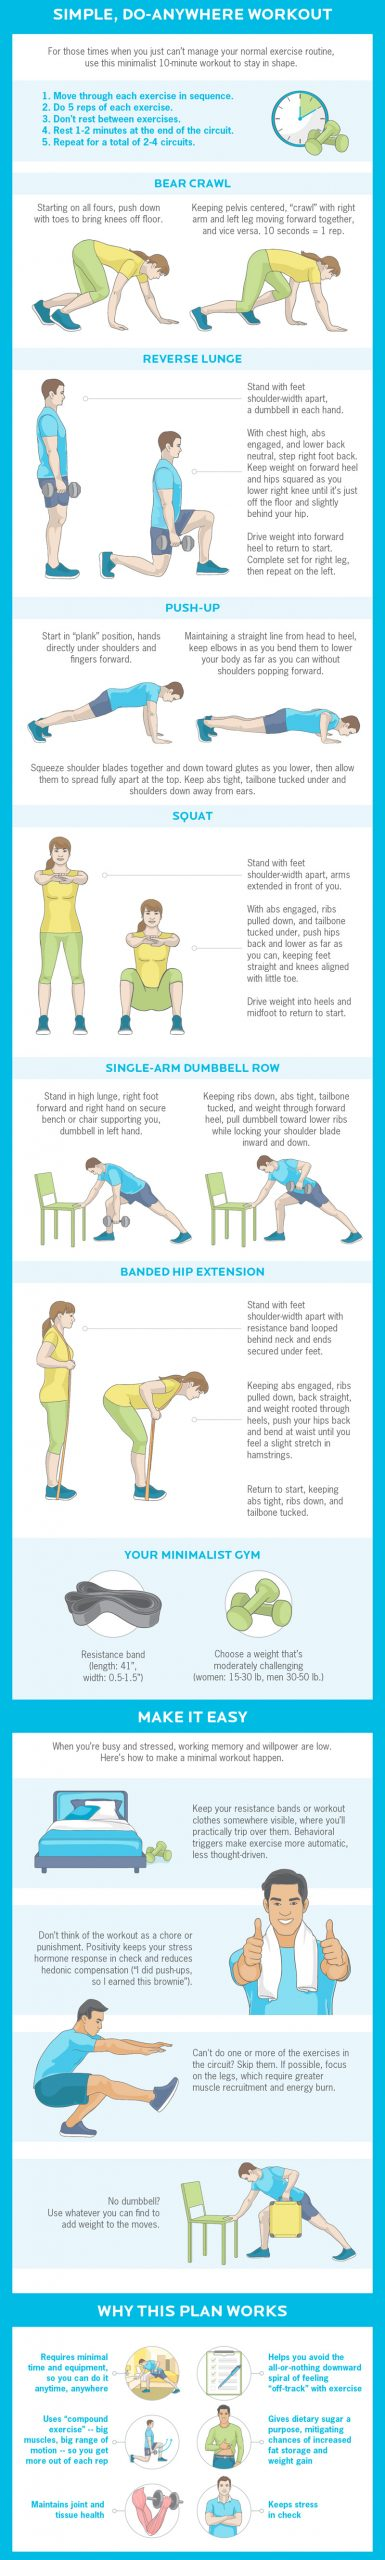 Simple to do anywhere workout